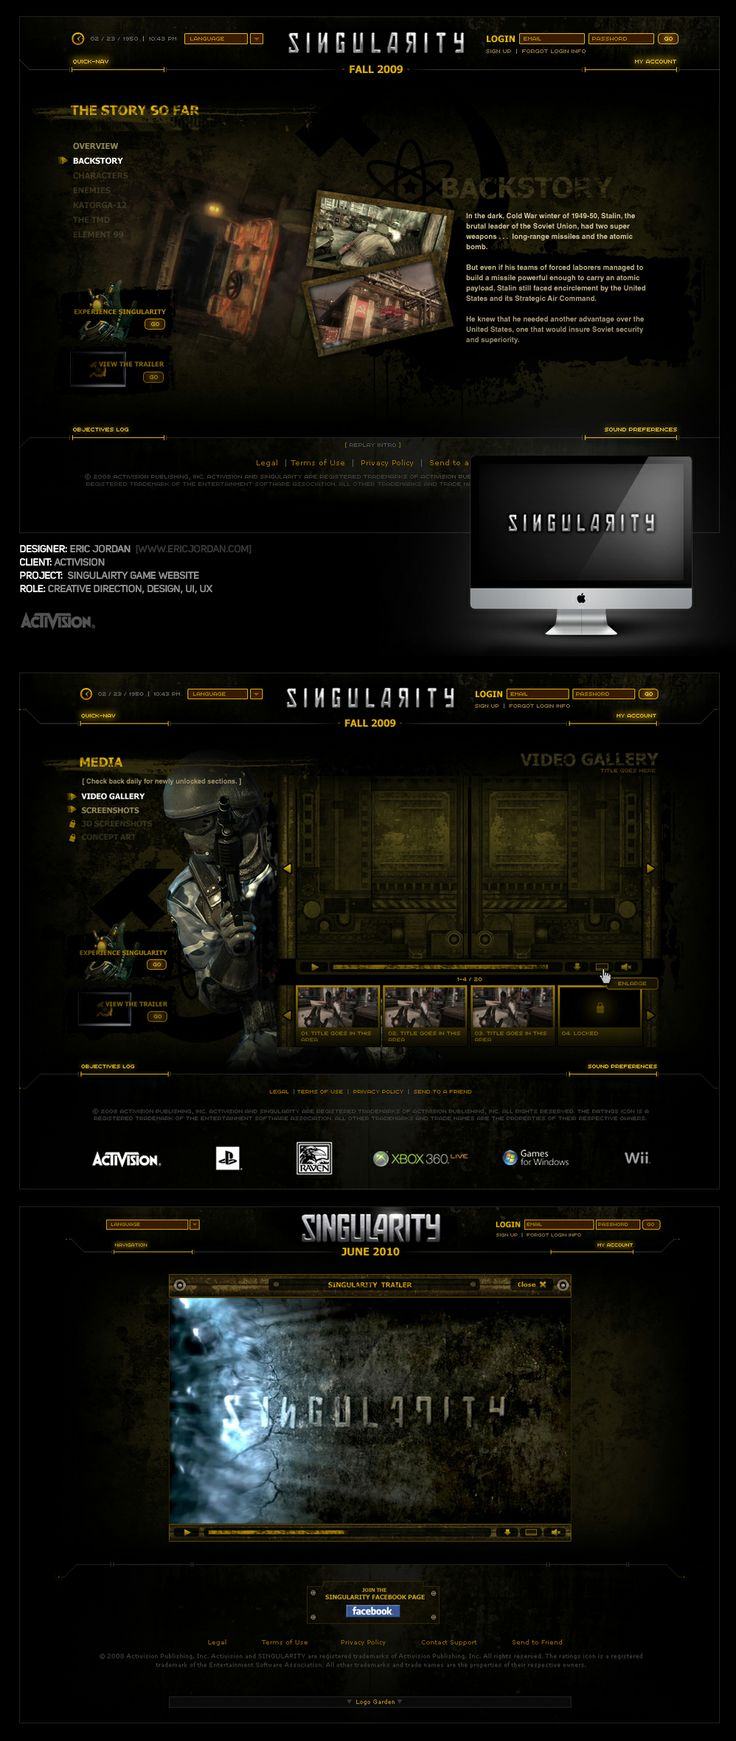 Activision: Singularity Launch Website - Designed By Eric Jordan (www.ericjordan.com) #webdesign #graphic #design